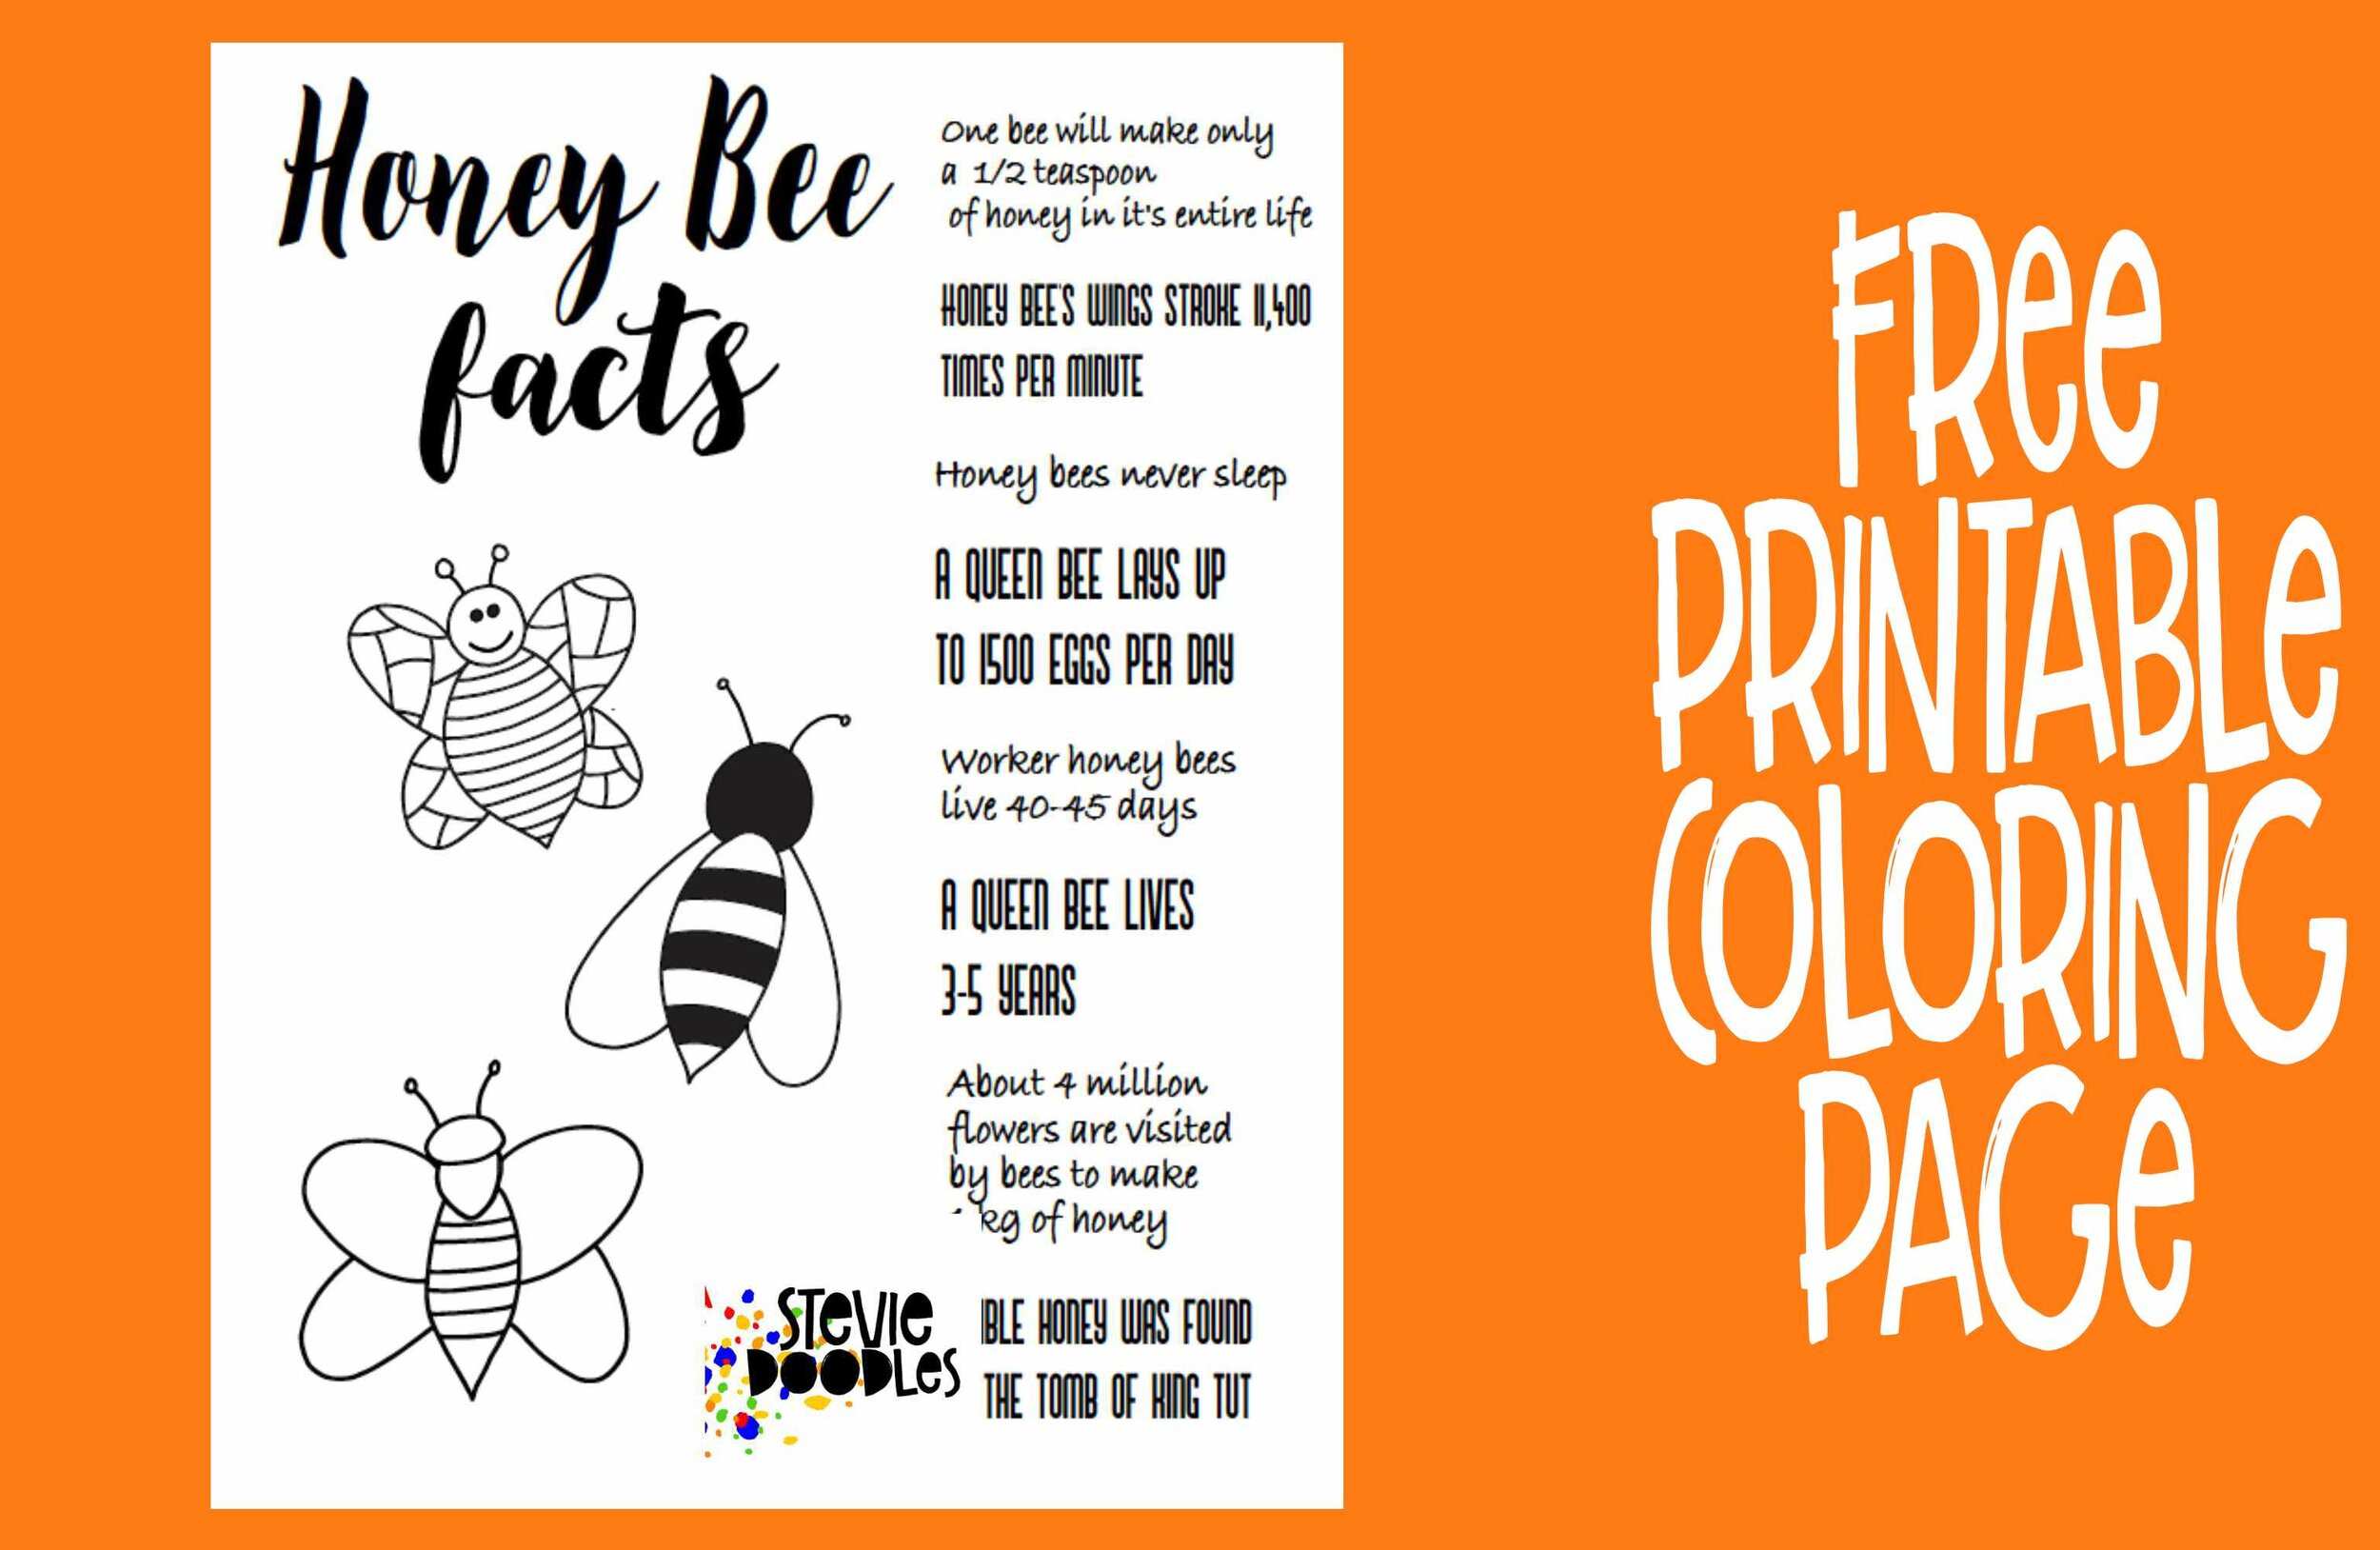 Honey Bee Facts Free Printable Coloring Page Stevie Doodles